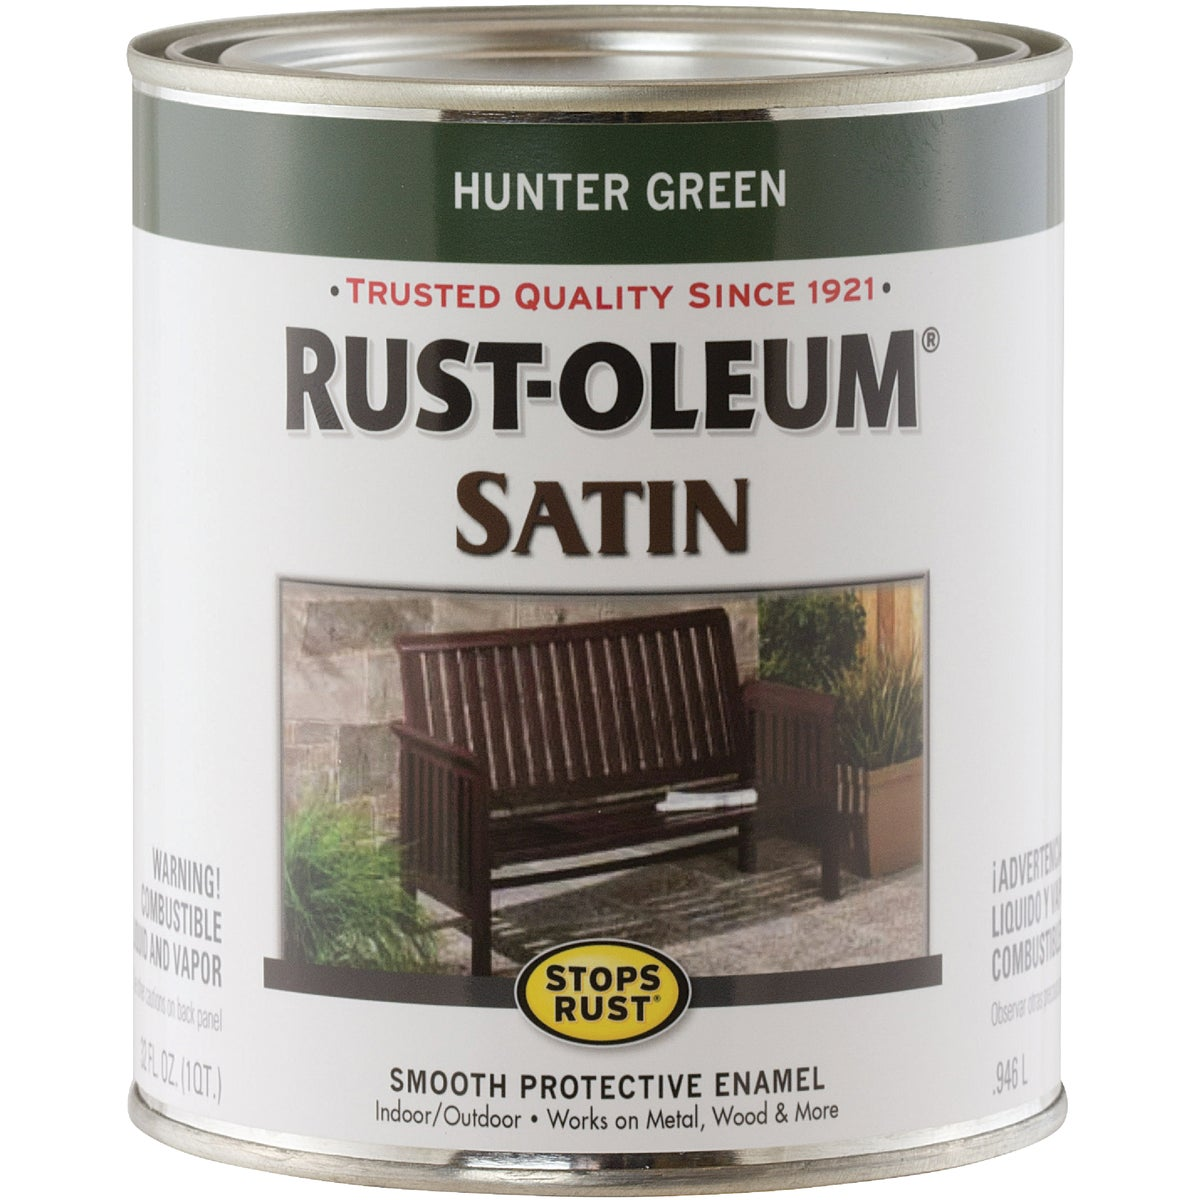 SATIN HUNTR GREEN ENAMEL - 7732502 by Rustoleum